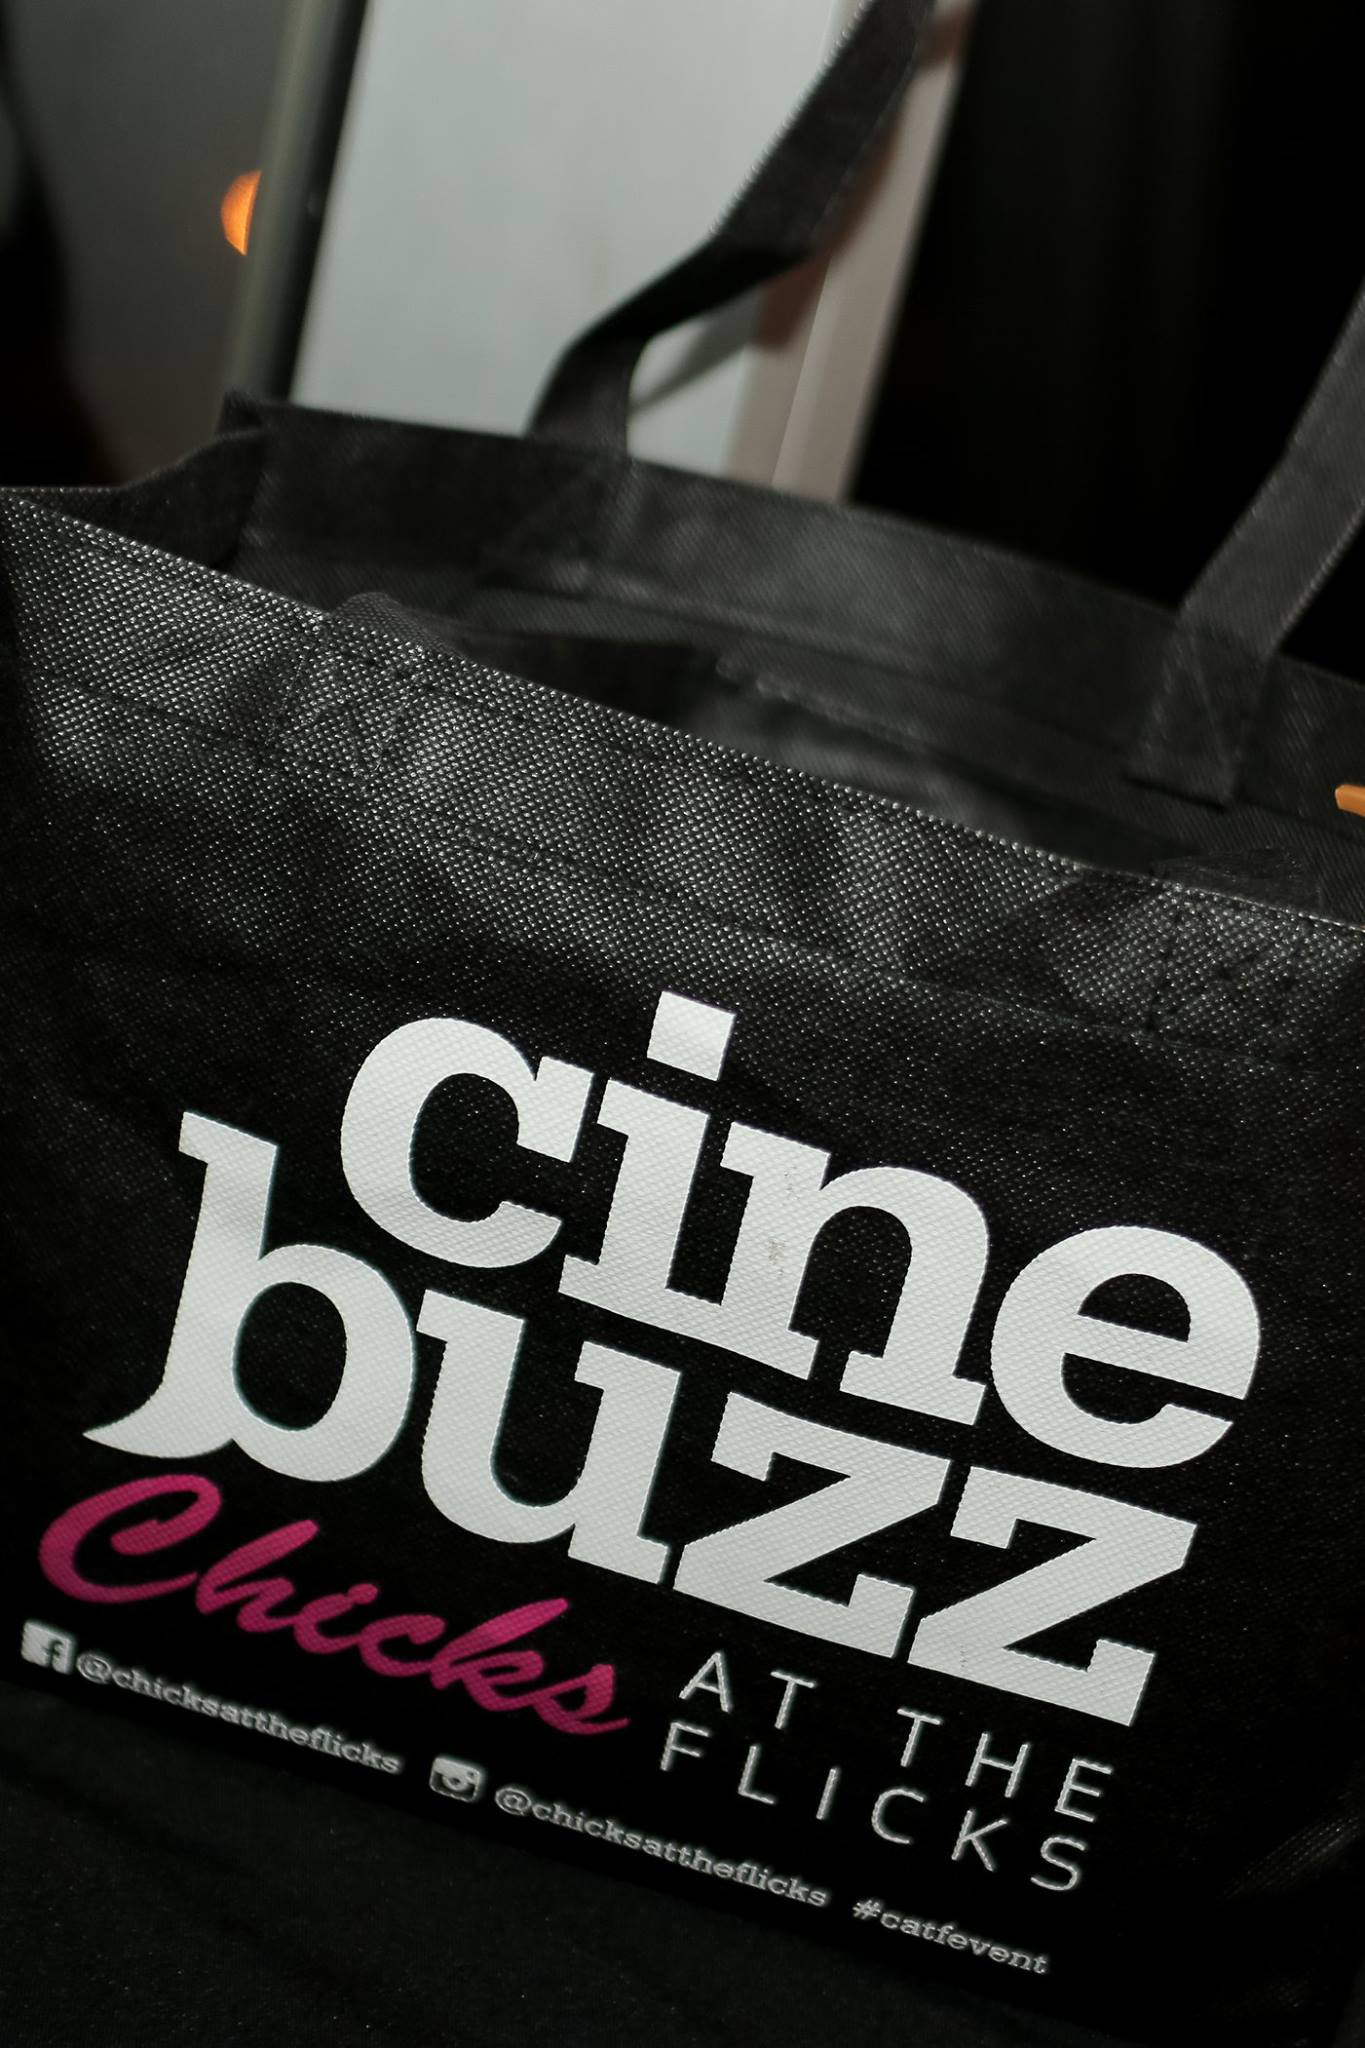 Thank you to our event partners Event Cinemas Bondi Junction who also generously donated 2 x 'Chicks at the Flicks' goodie bags and tickets to our charity raffle for PANDA. Their next Chick movie, 'My Big Fat Greek Wedding 2' is showing on Wednesday 23 March.